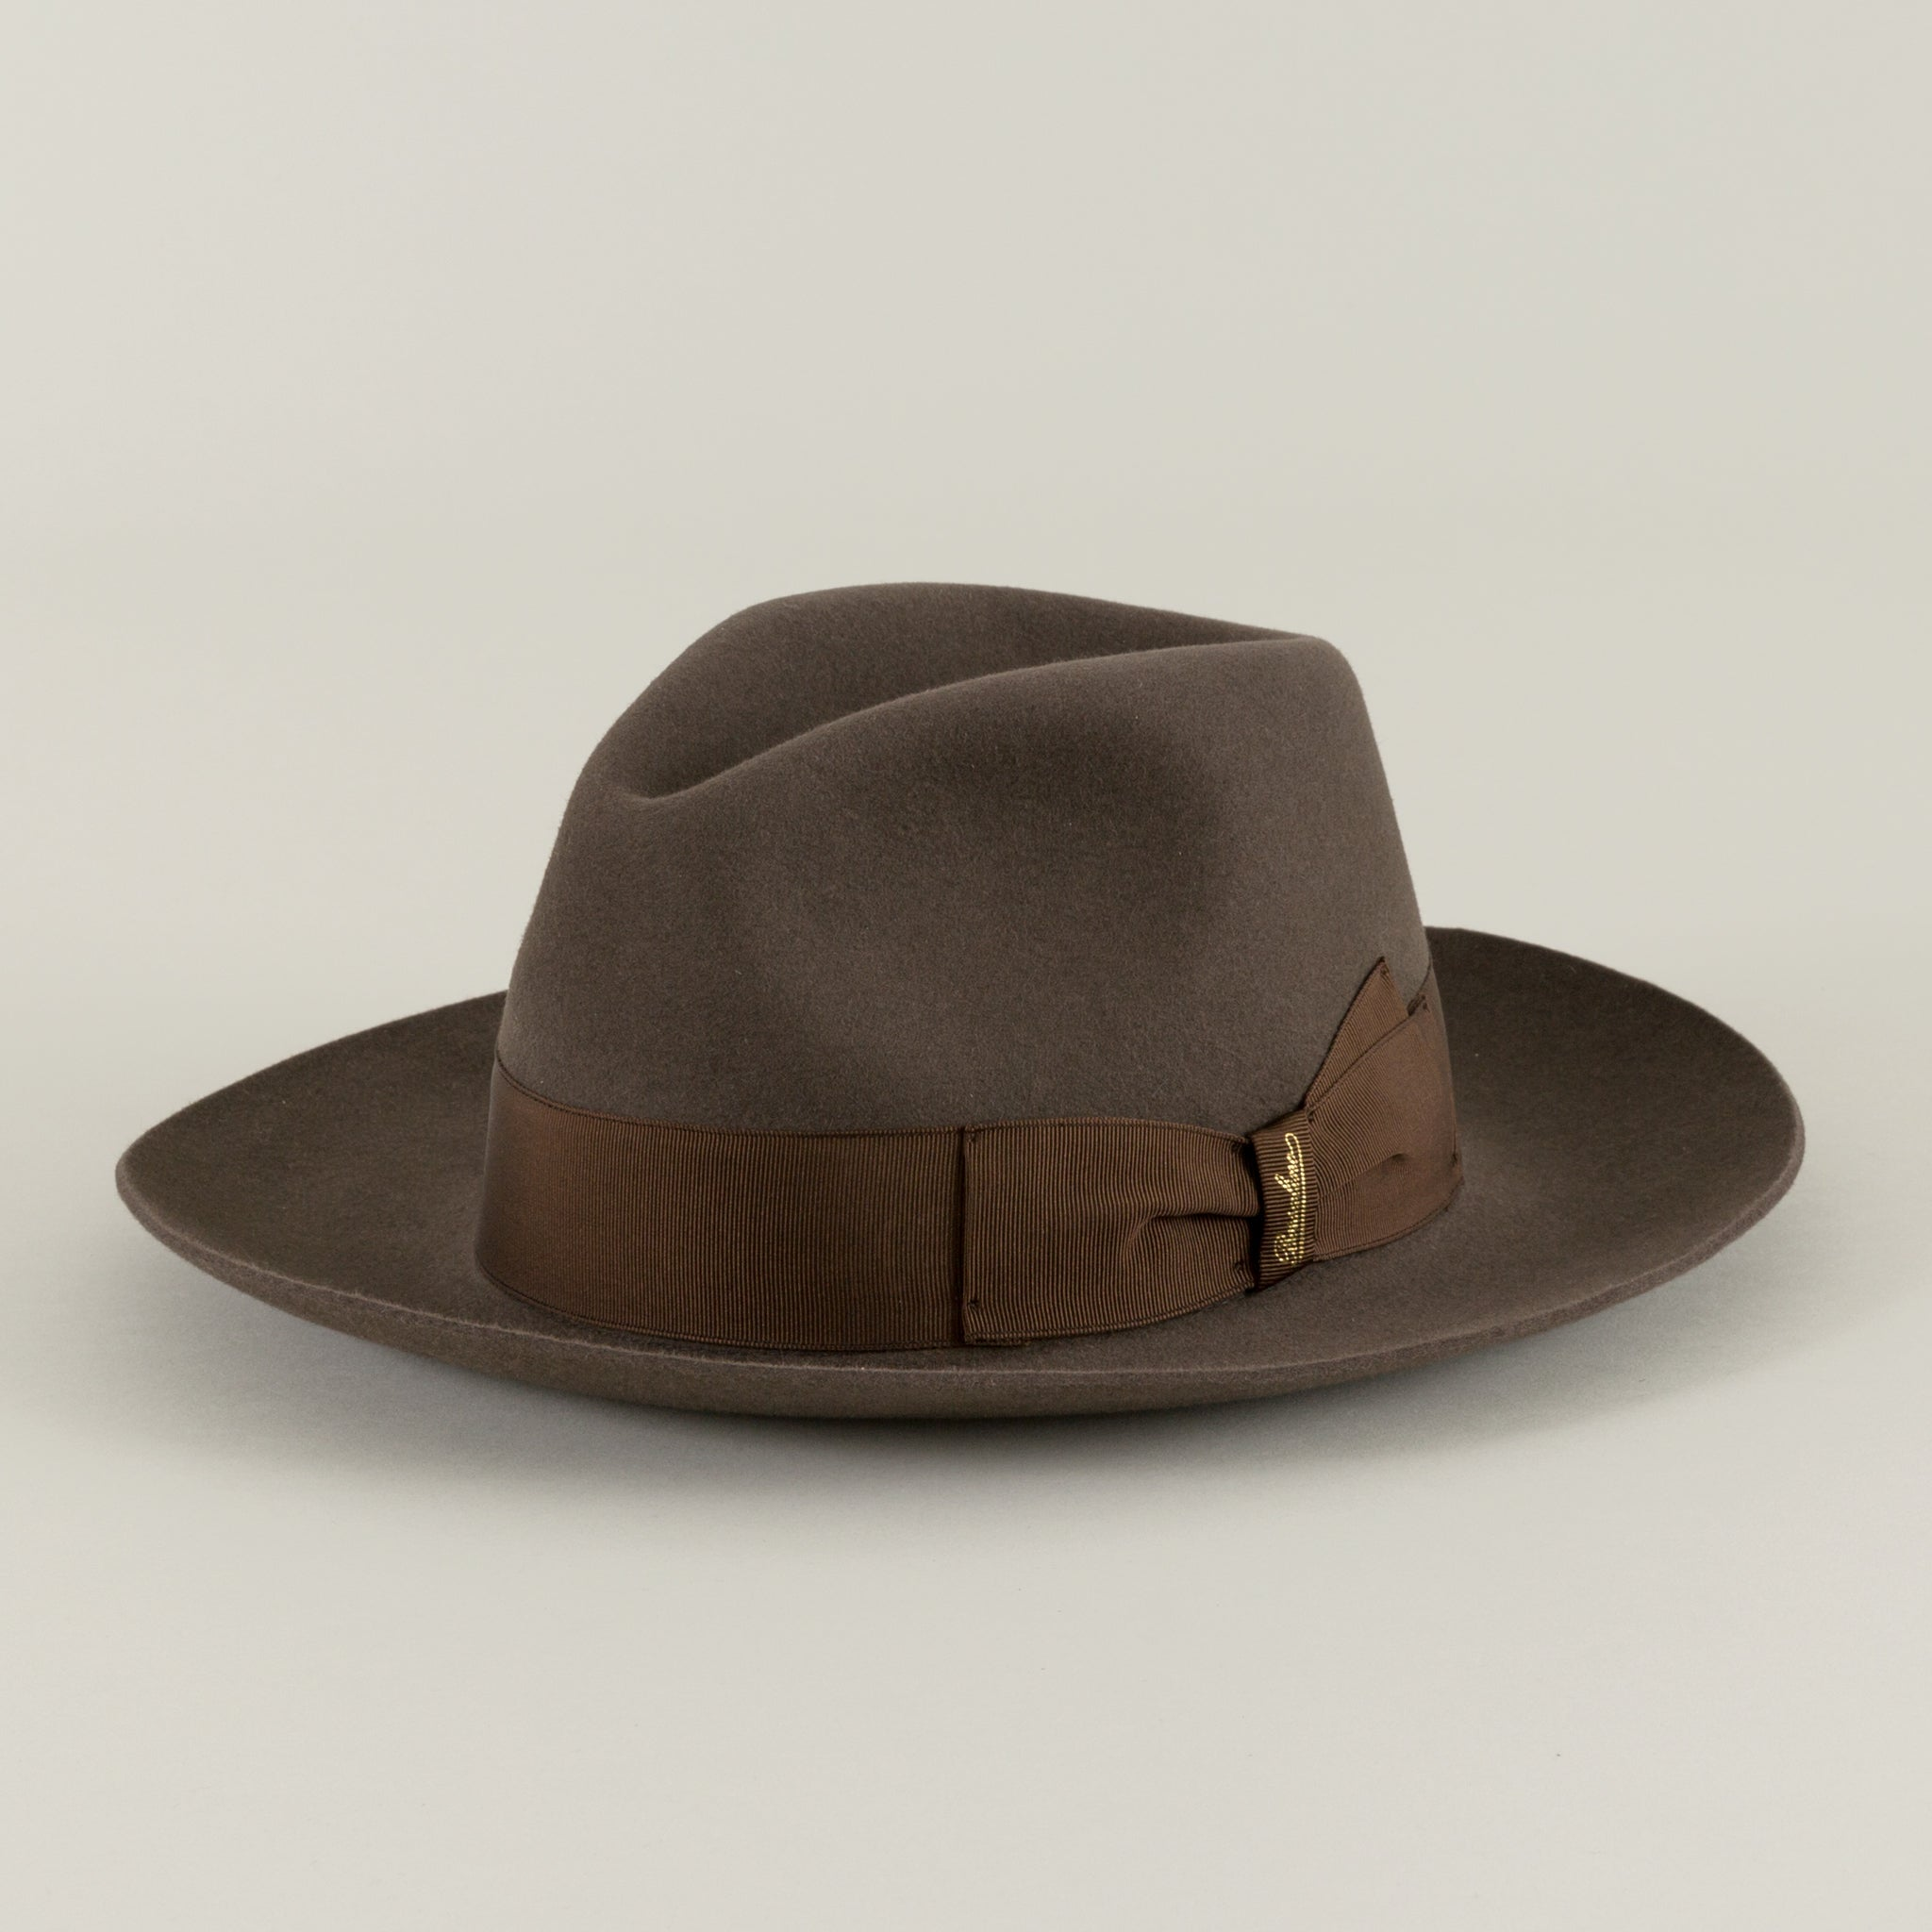 c8857614f37 classico wide brim hat brown taupe the stronghold rh thestronghold com